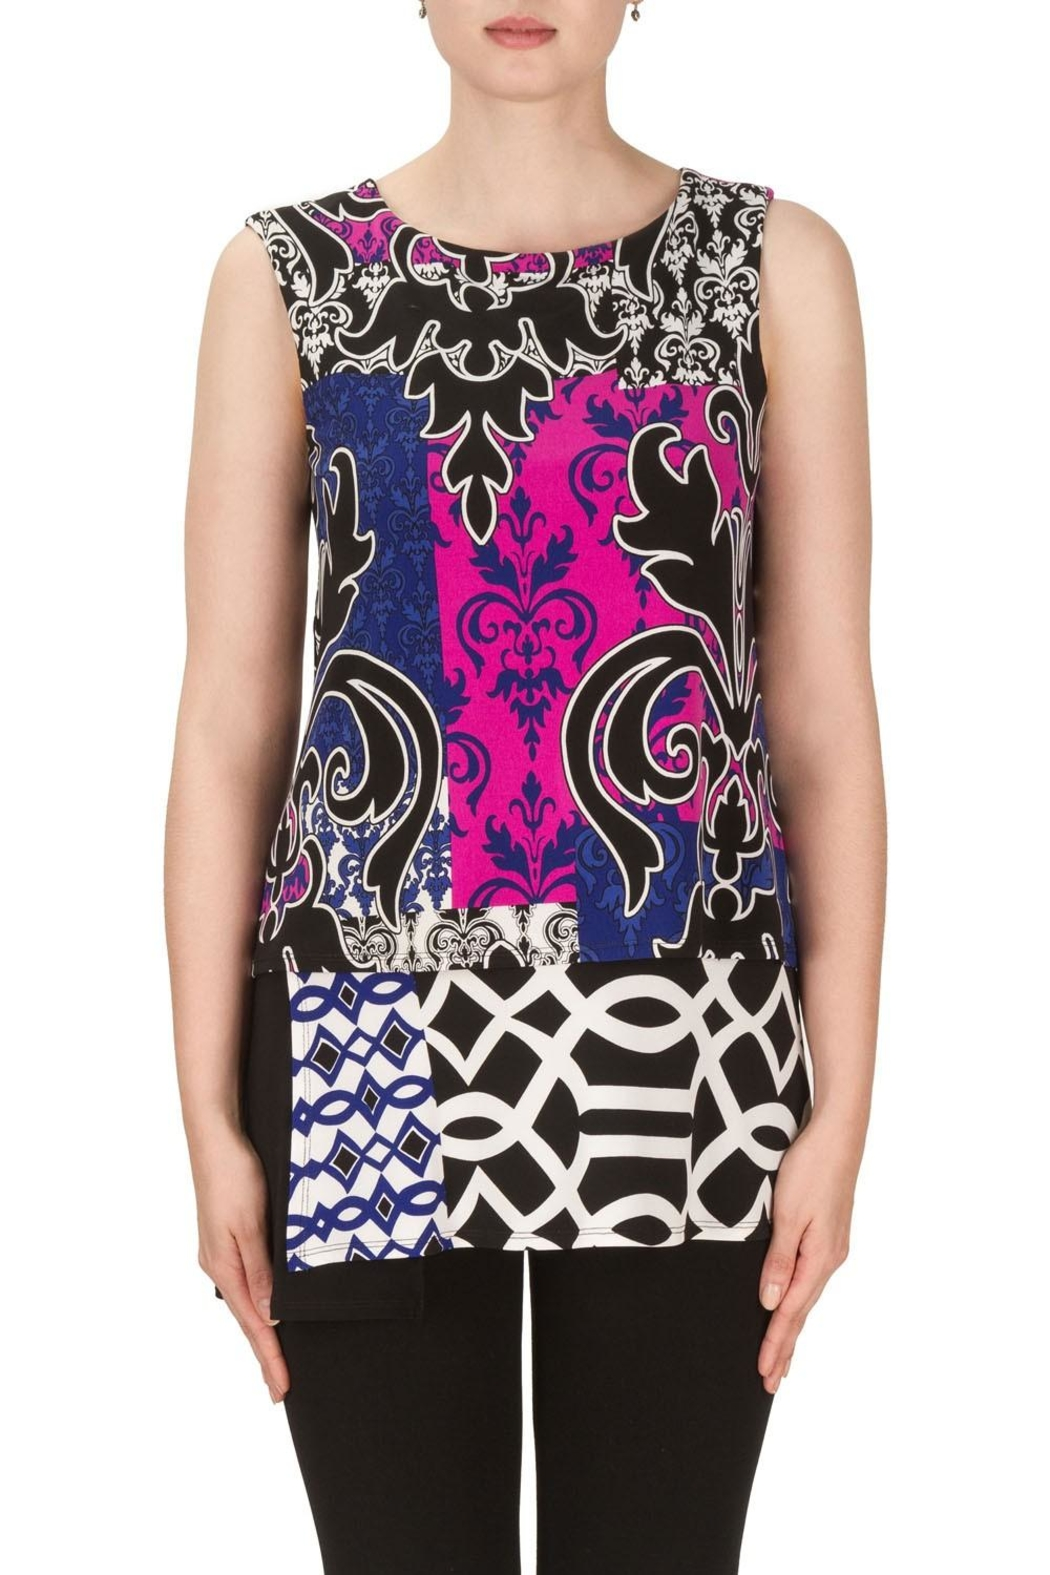 Joseph Ribkoff Nicole Patterned Top - Front Cropped Image